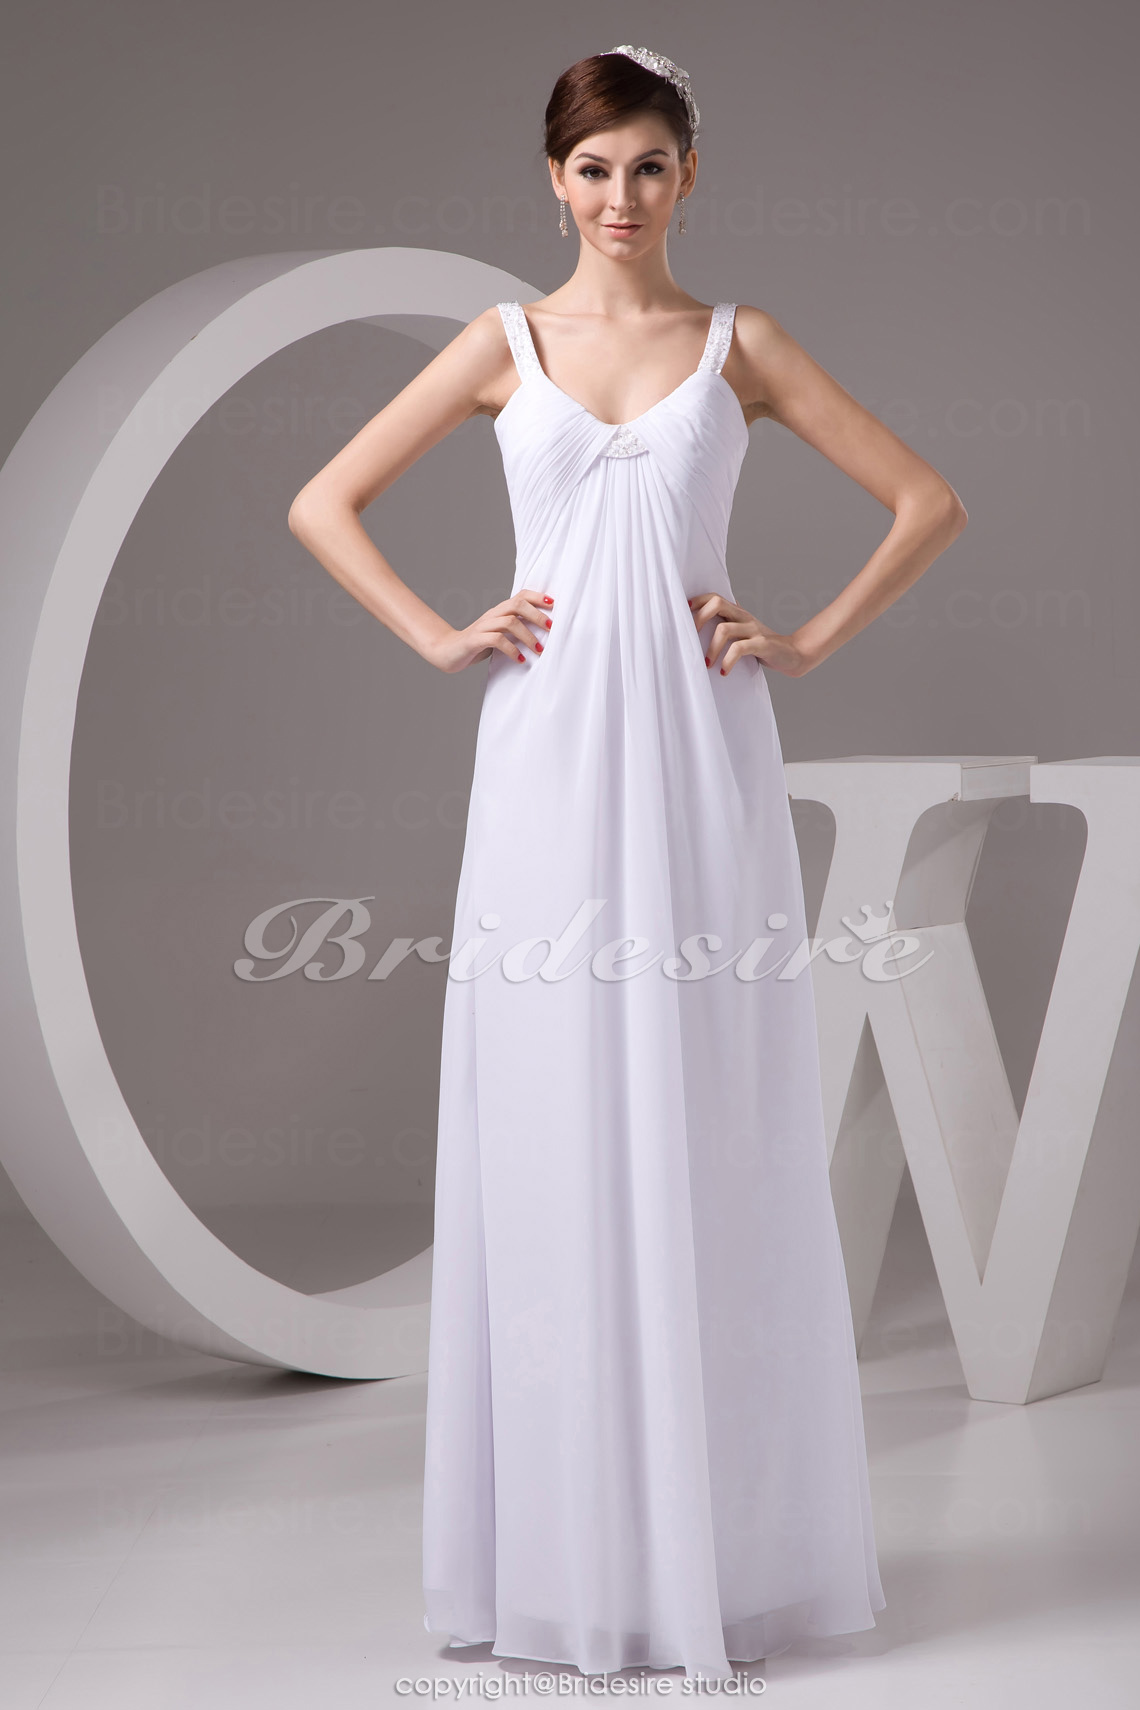 Sheath/Column Scoop Floor-length Sleeveless Chiffon Wedding Dres